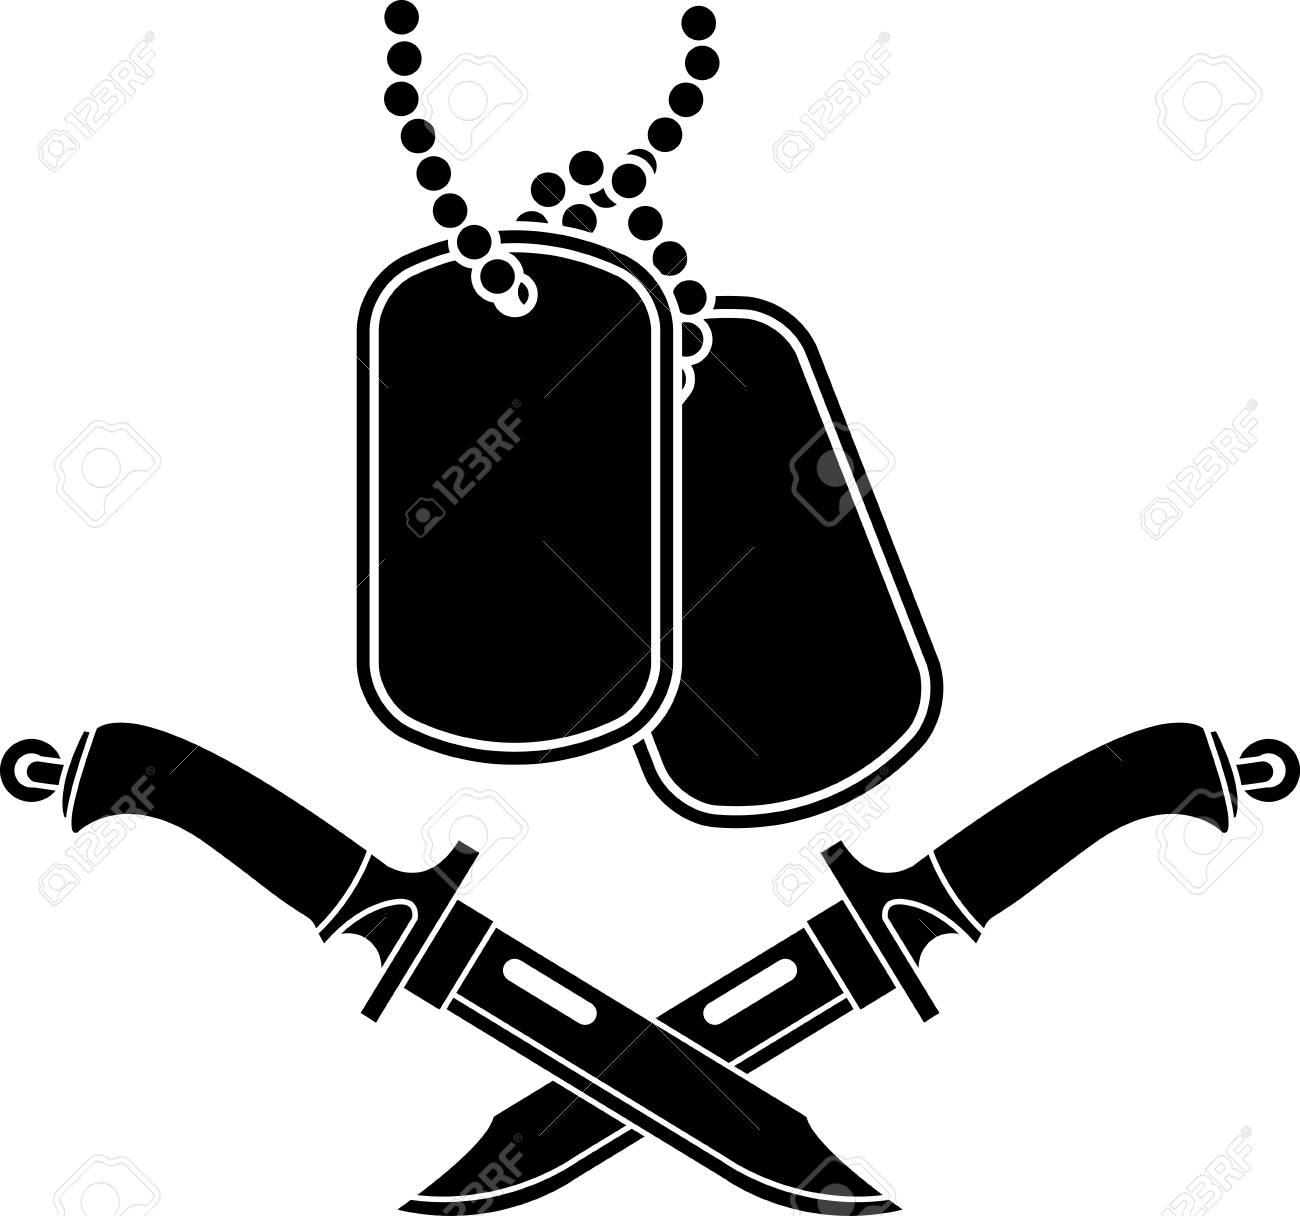 Dog Tags And Knifes Vector Illustration